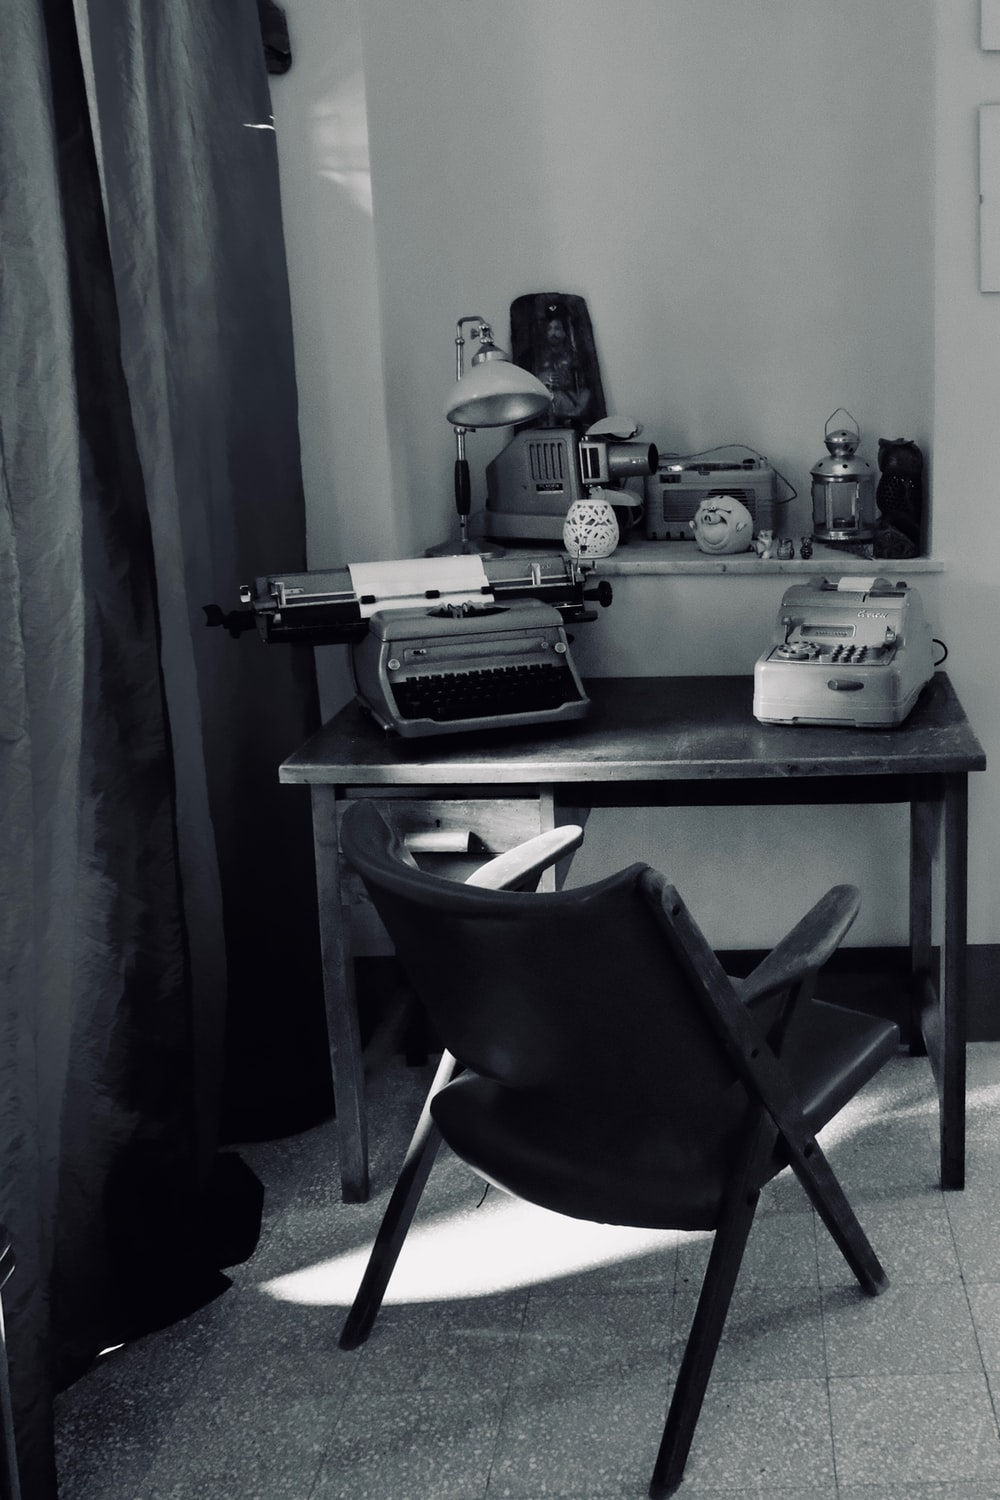 black leather padded metal framed chair near computer table